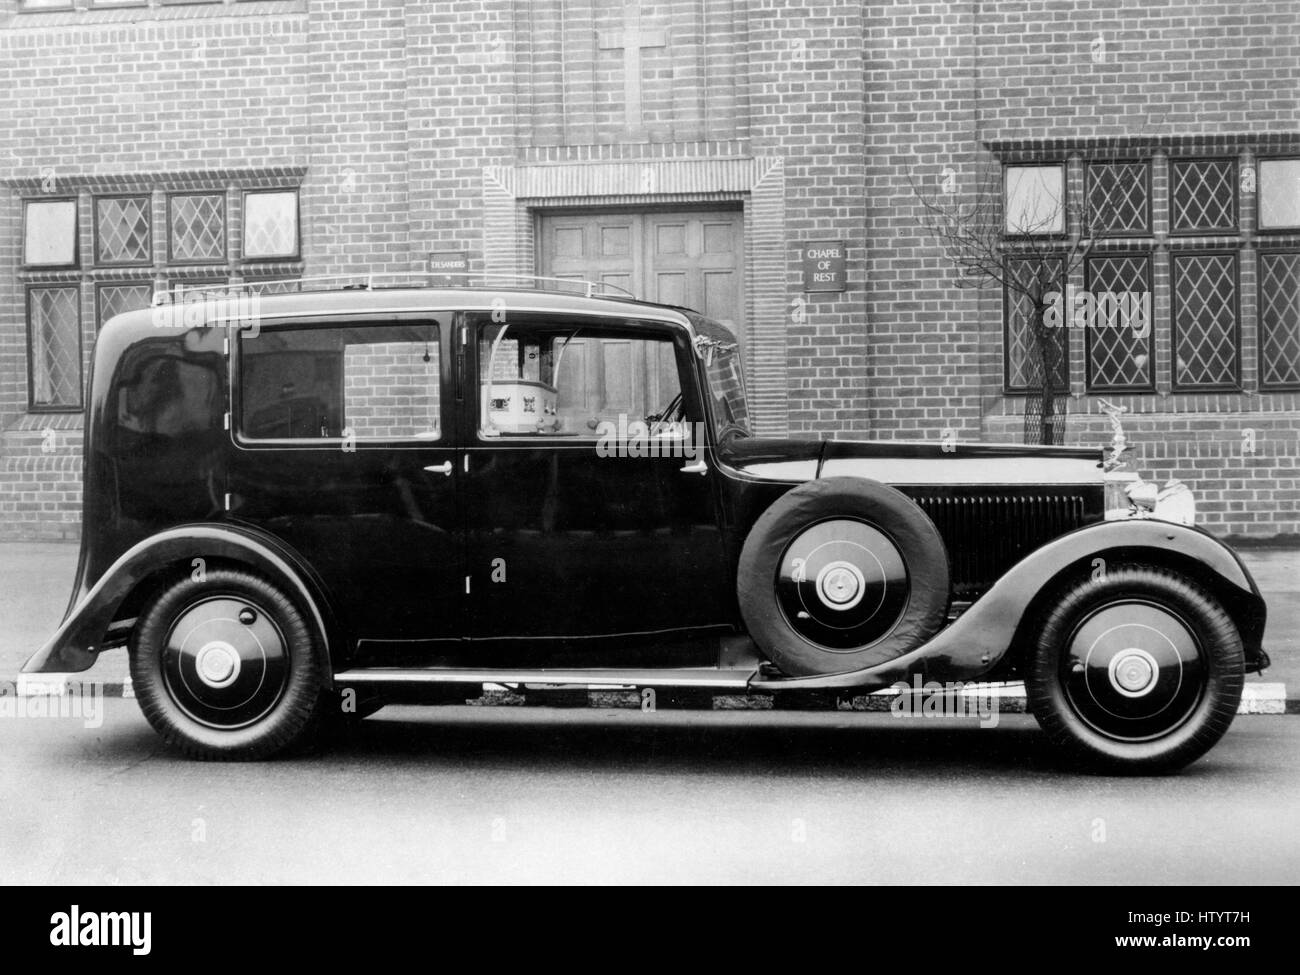 1932 Rolls Royce Phantom II hearse by J.C. Clark - Stock Image